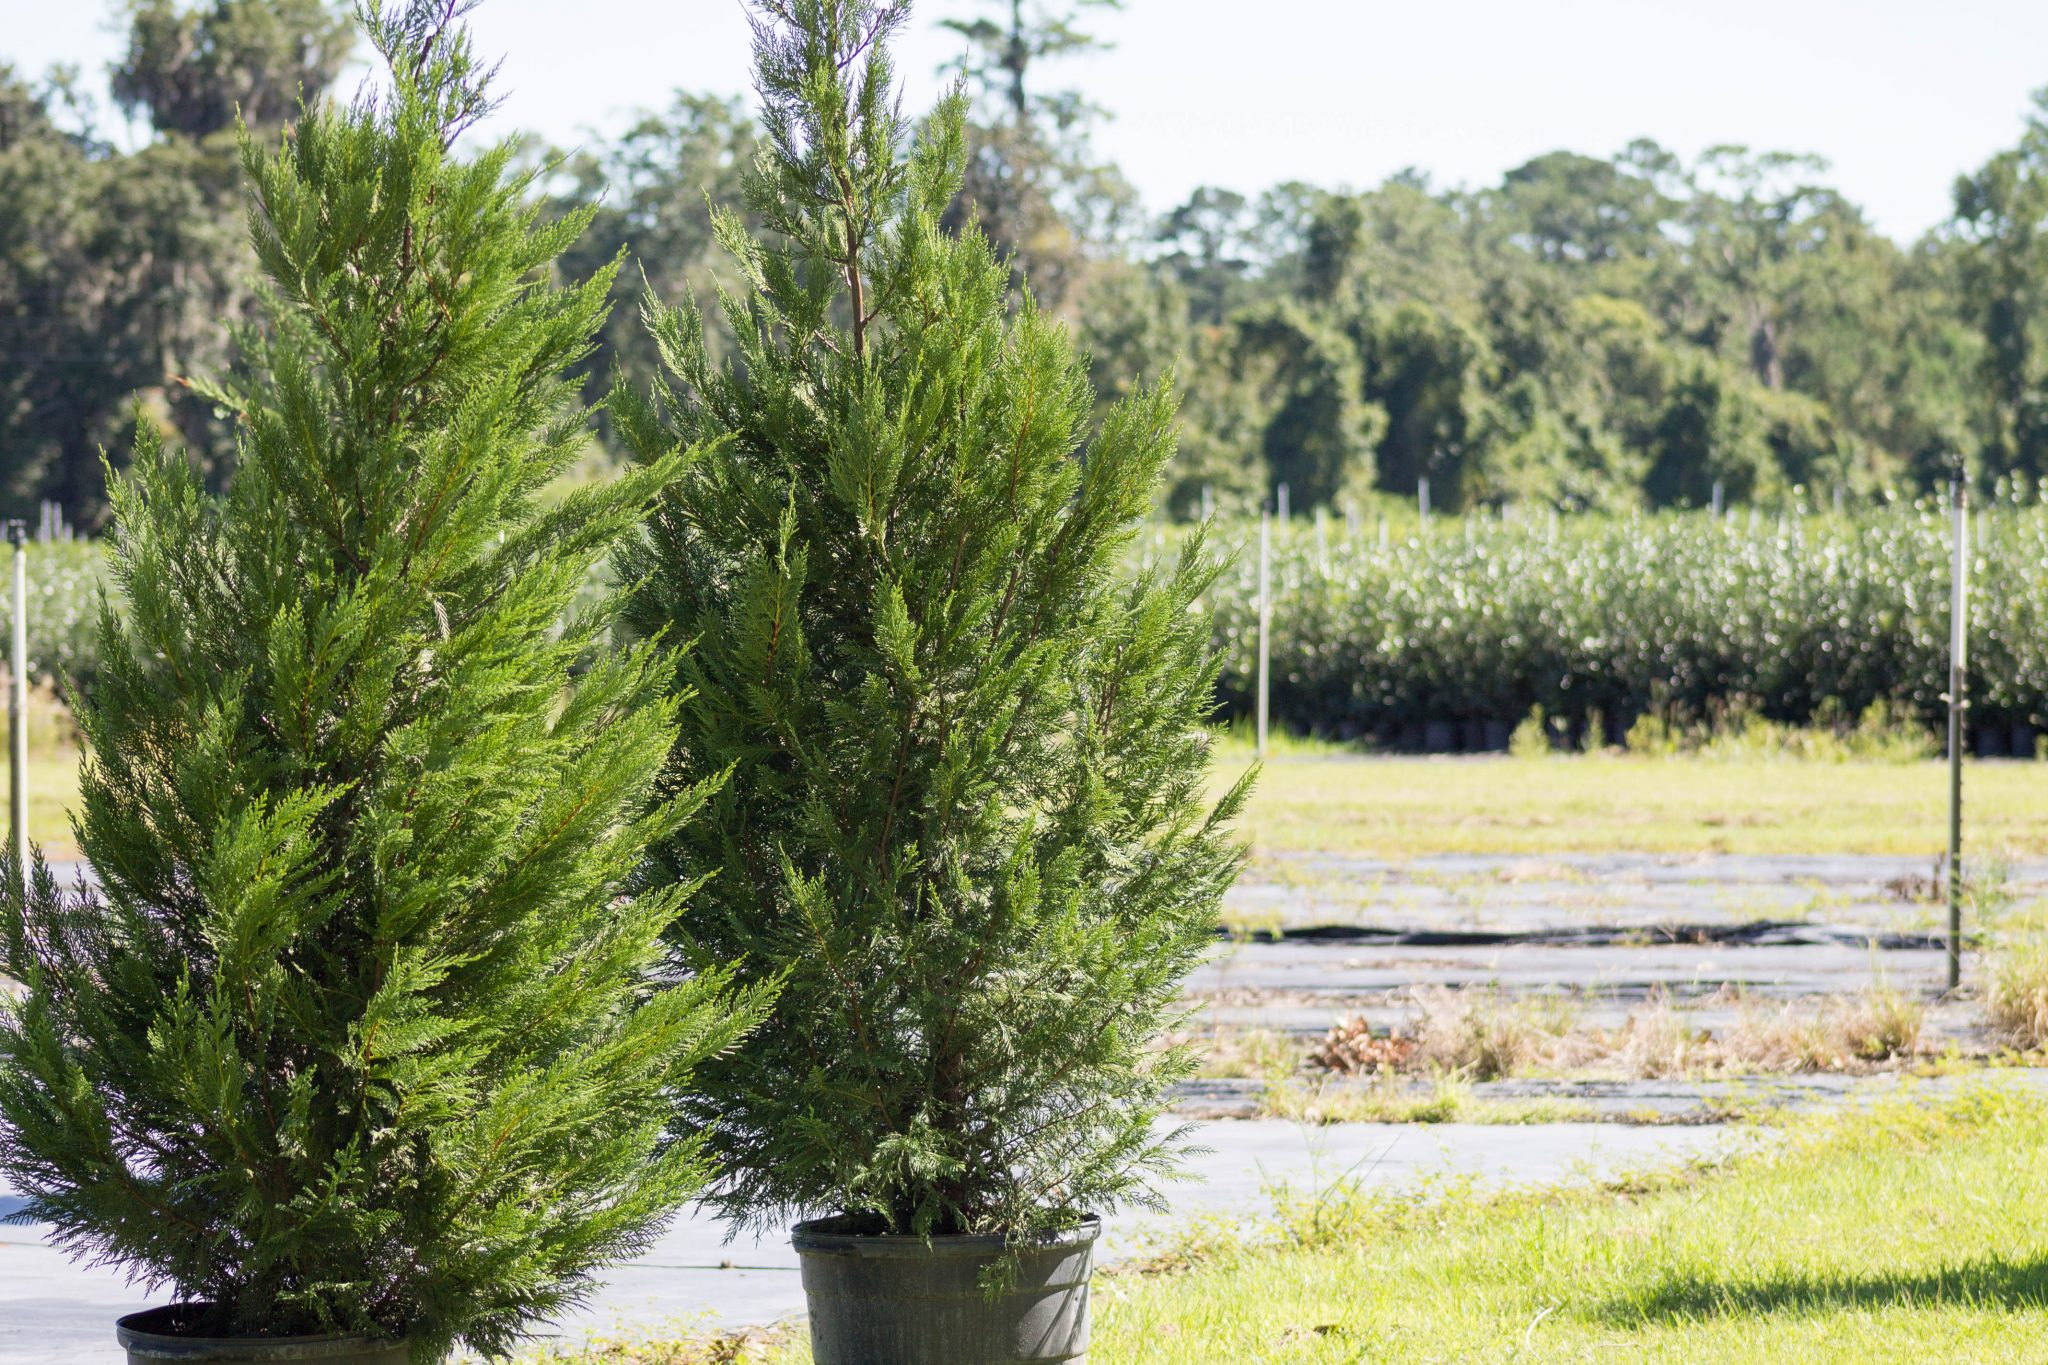 Leyland Cypress at the tree frm preparing to be loaded on the truck.